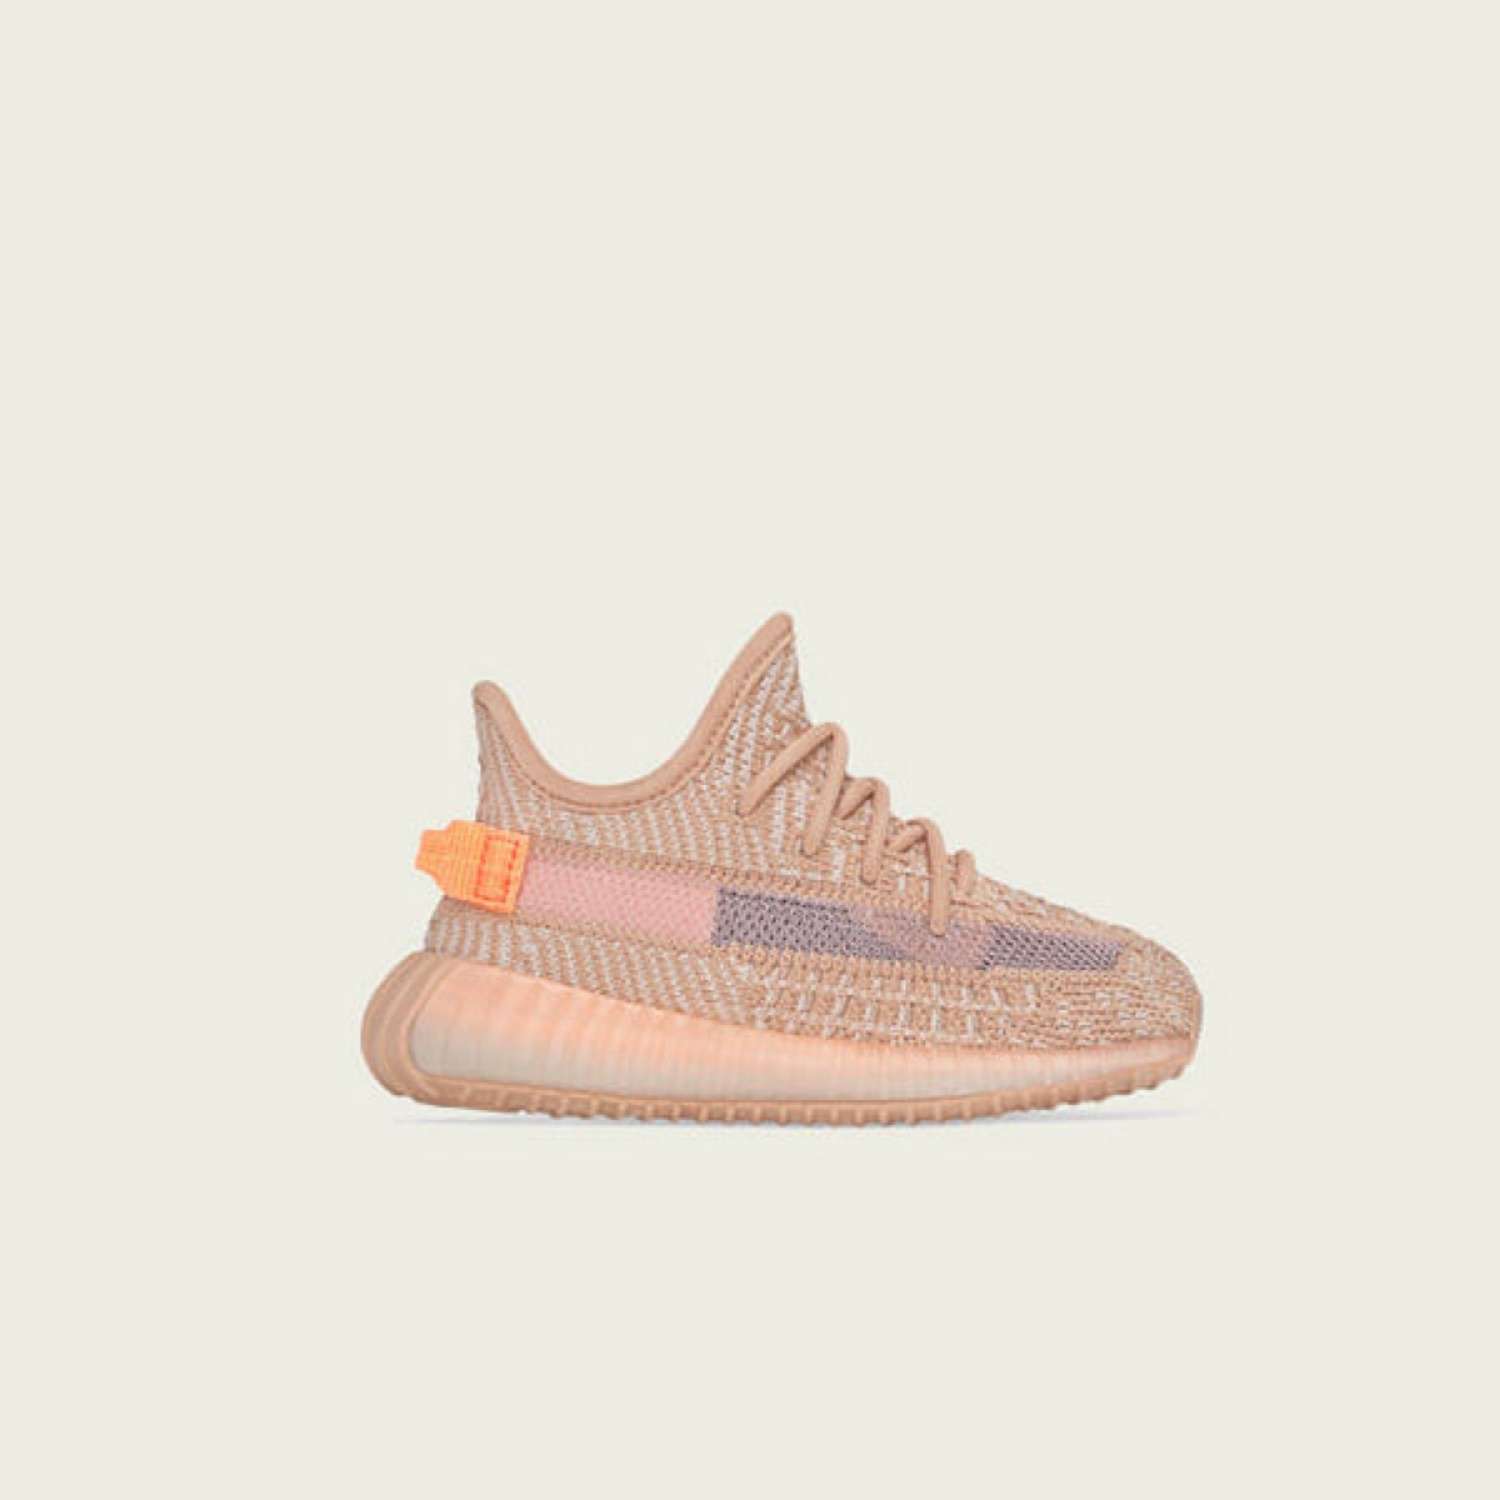 """new arrival 1a777 5d7d5 Adidas Yeezy Boost 350 V2 """"Clay"""" Td (Toddler)"""